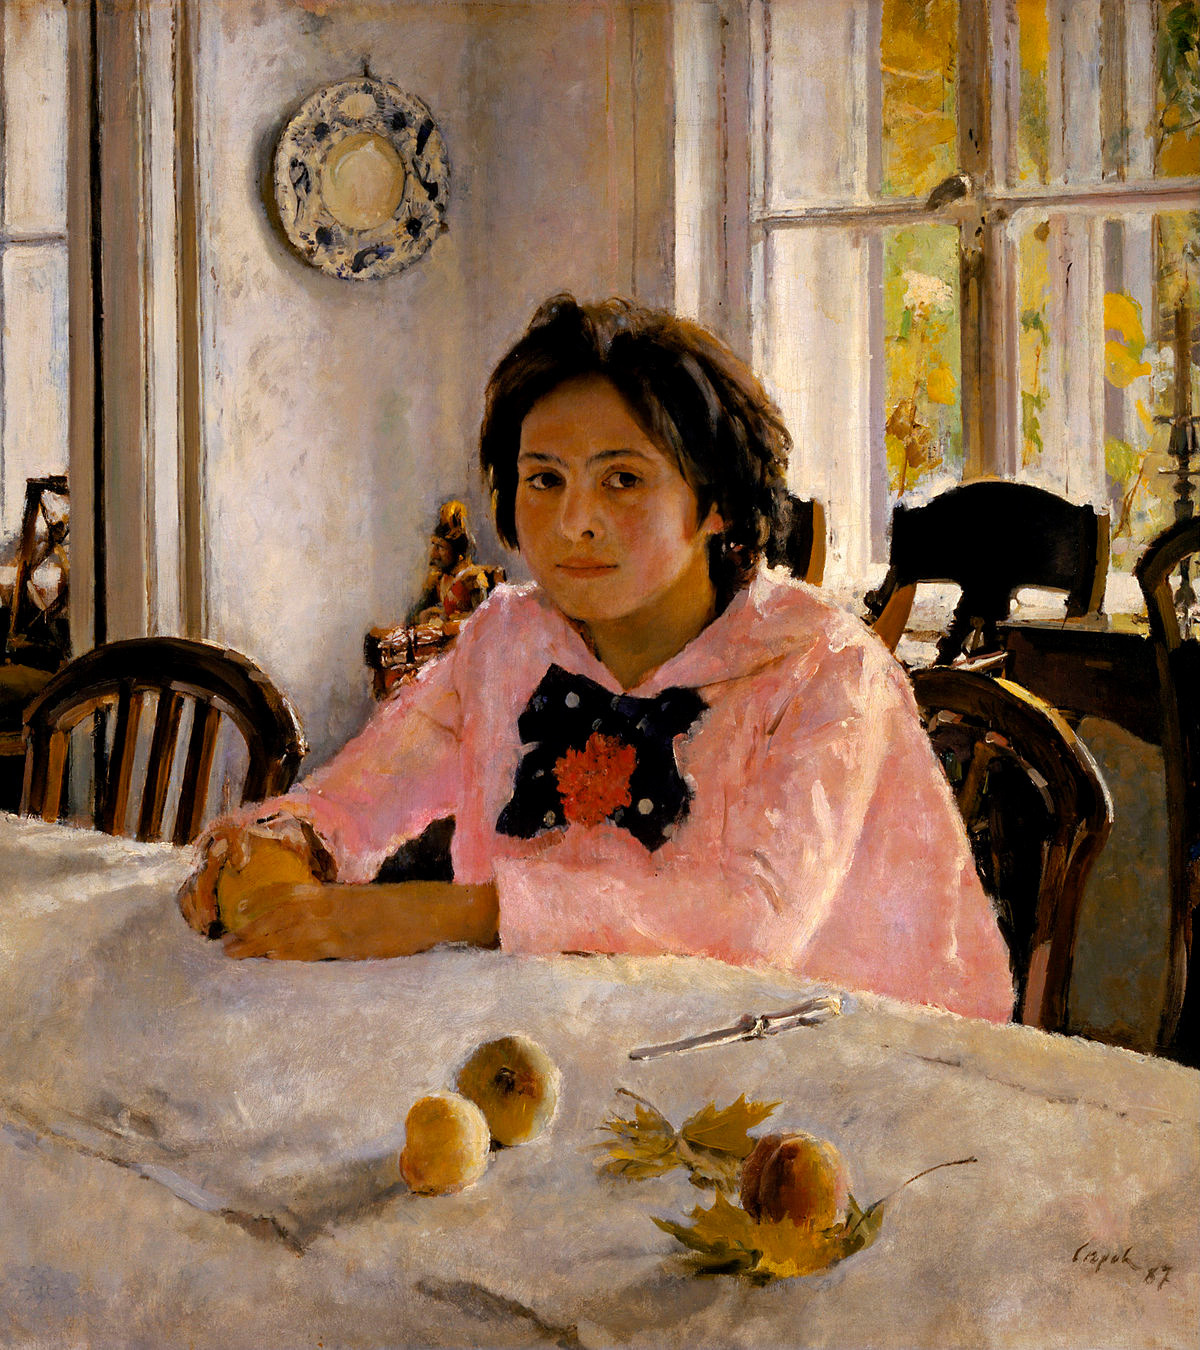 Valentin Serov. The girl with peaches (1887). This is actually a portrait of Savva Mamontov's daughter Vera and it was painted in Abramtsevo